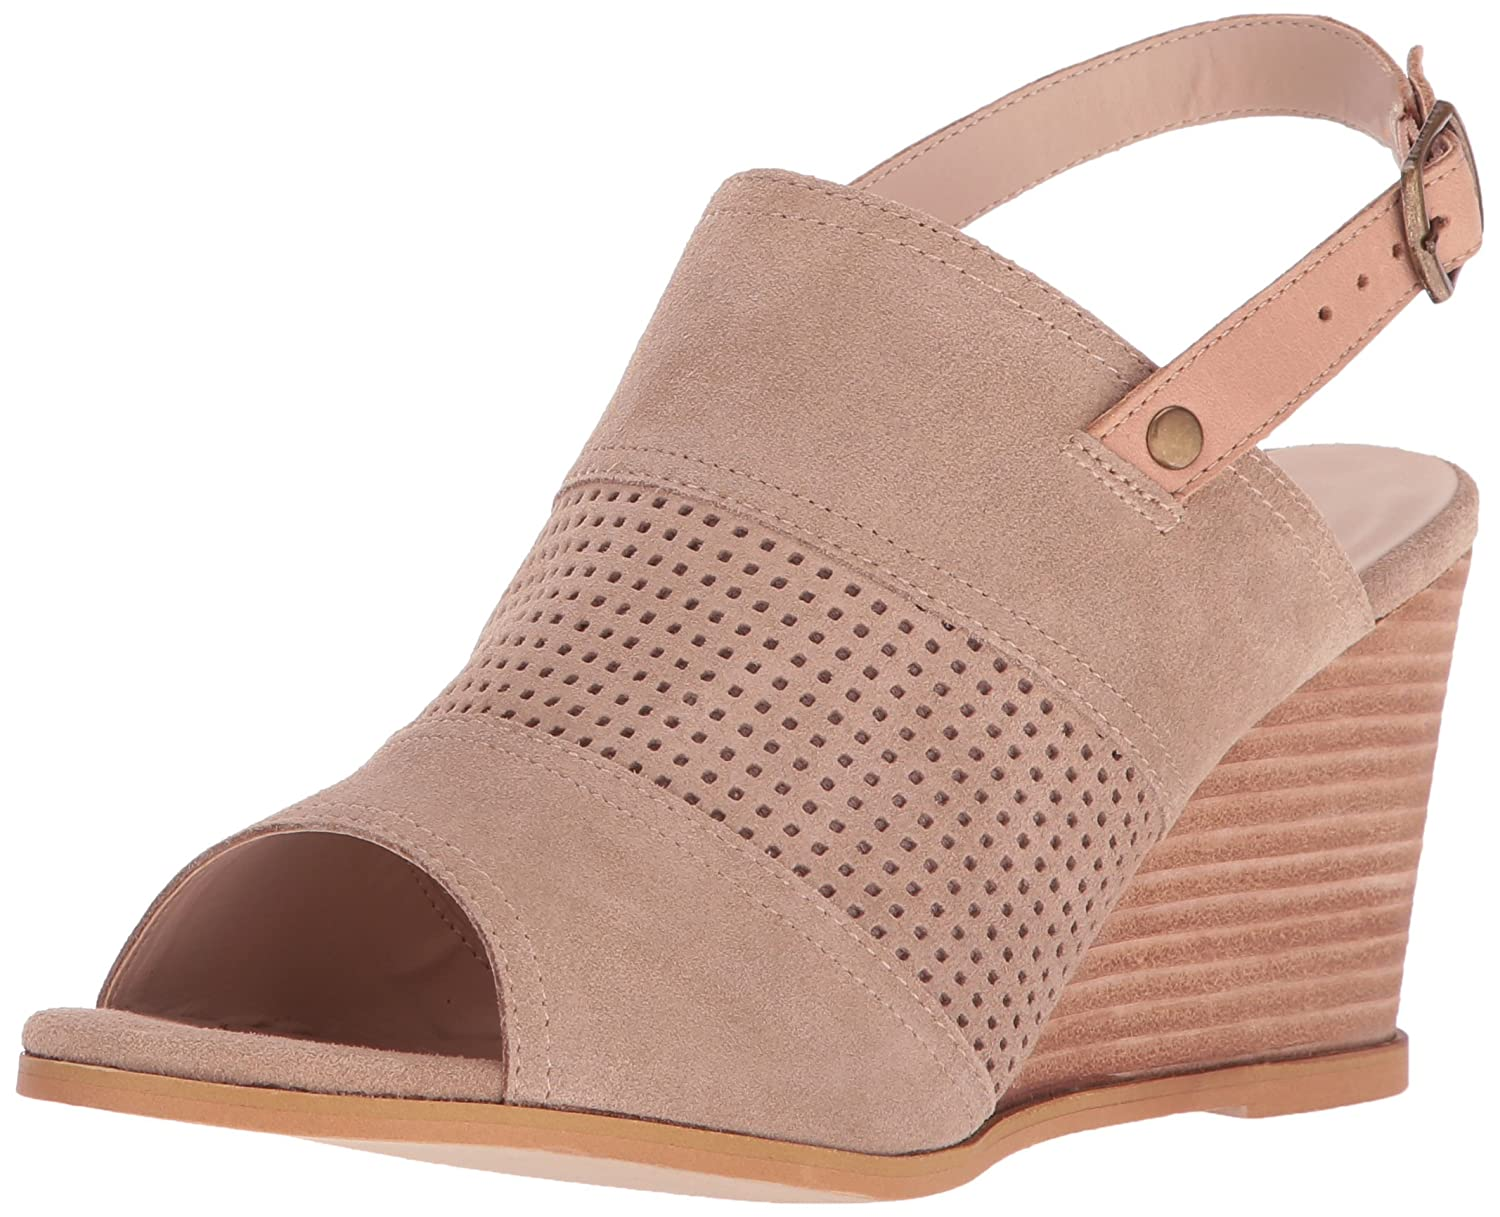 Very Volatile Women's Hyde Wedge Sandal B01LY9N4LS 8 B(M) US|Stone